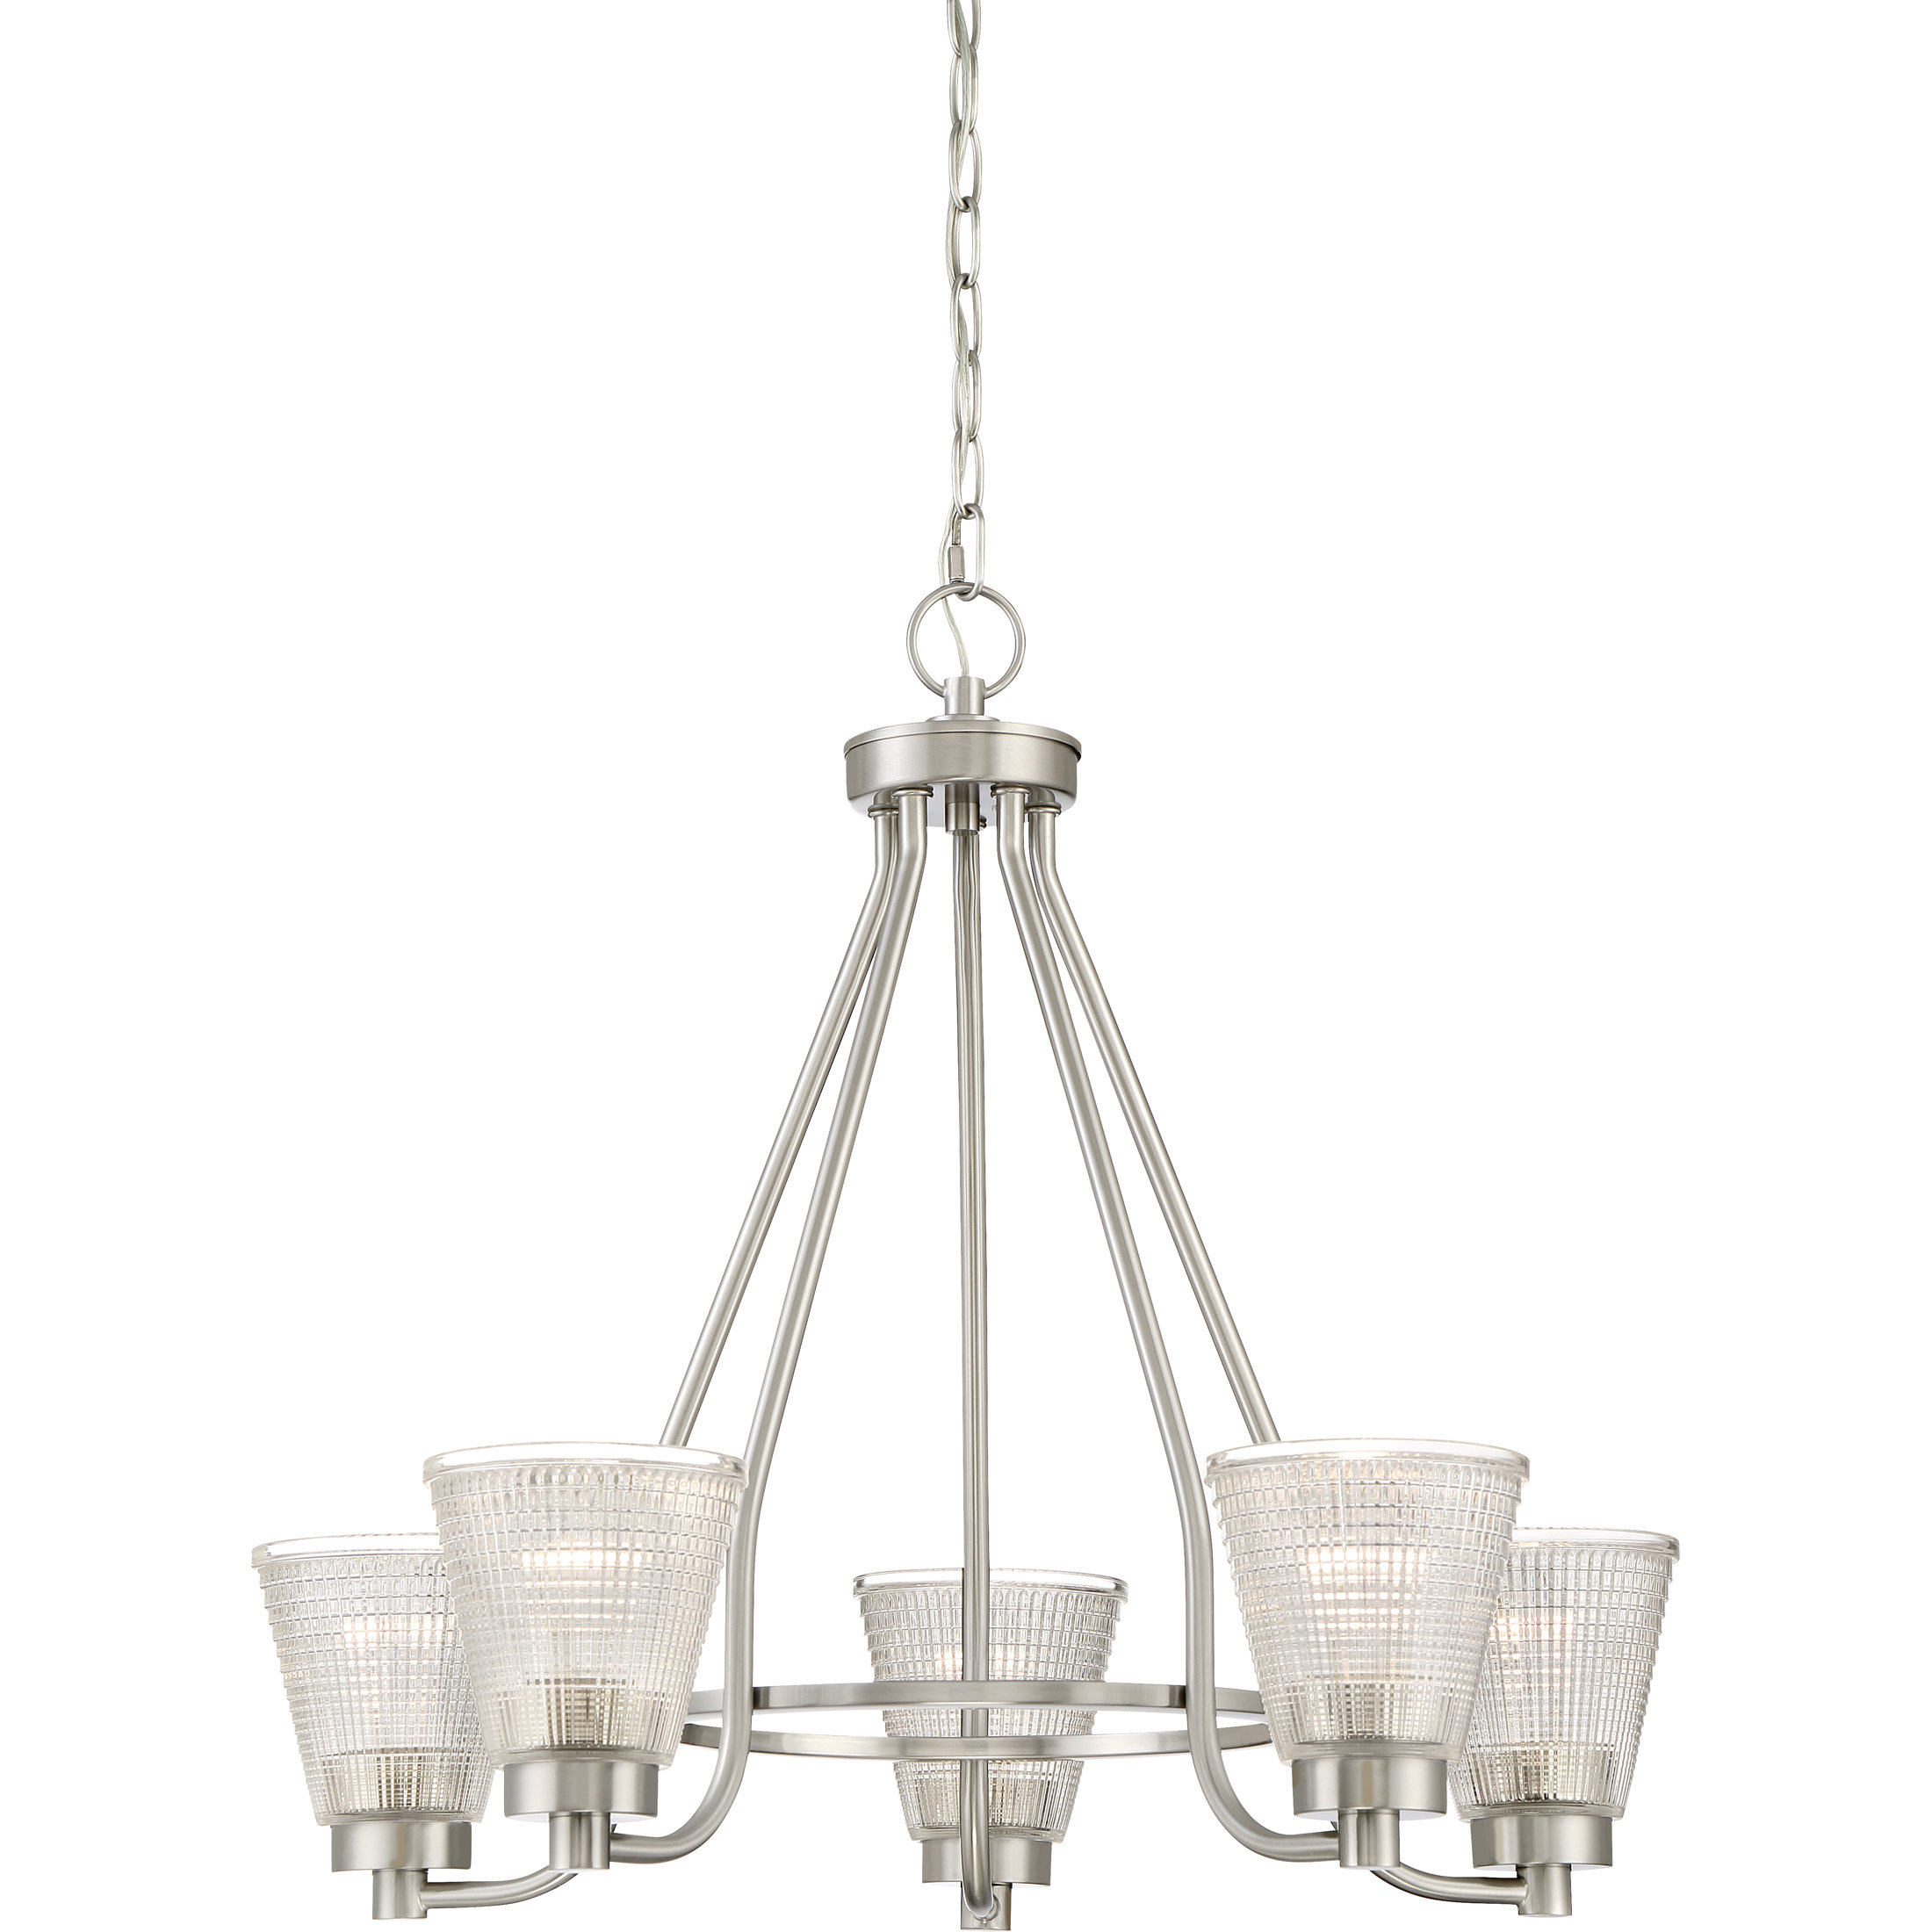 Haskett 5 Light Shaded Chandelier With Regard To Newent 5 Light Shaded Chandeliers (View 20 of 30)